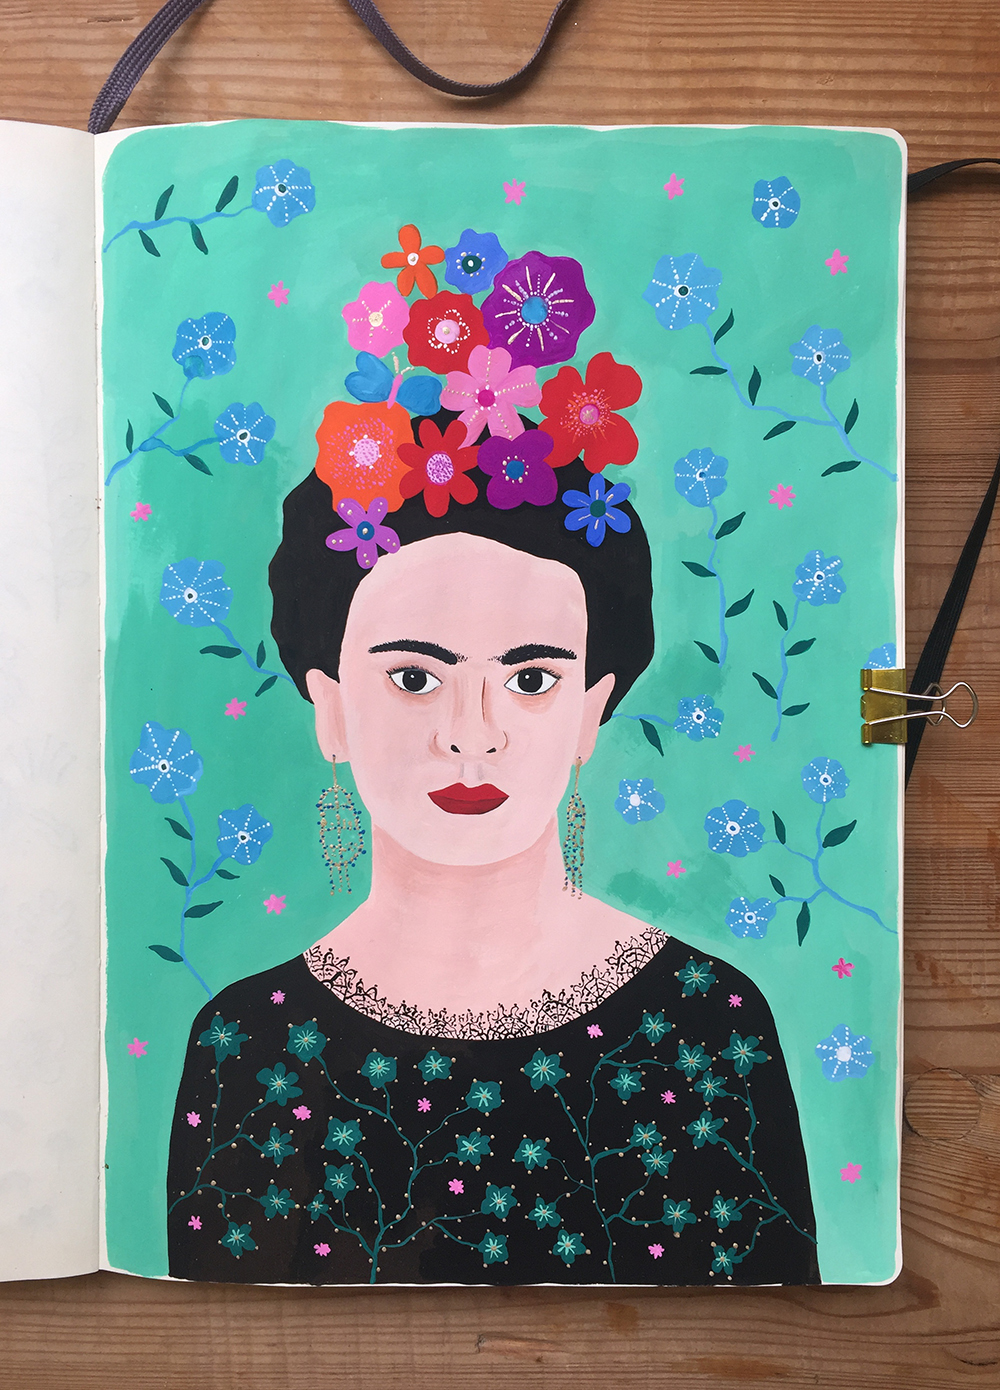 Frida Kahlo illustration by Marenthe.jpg